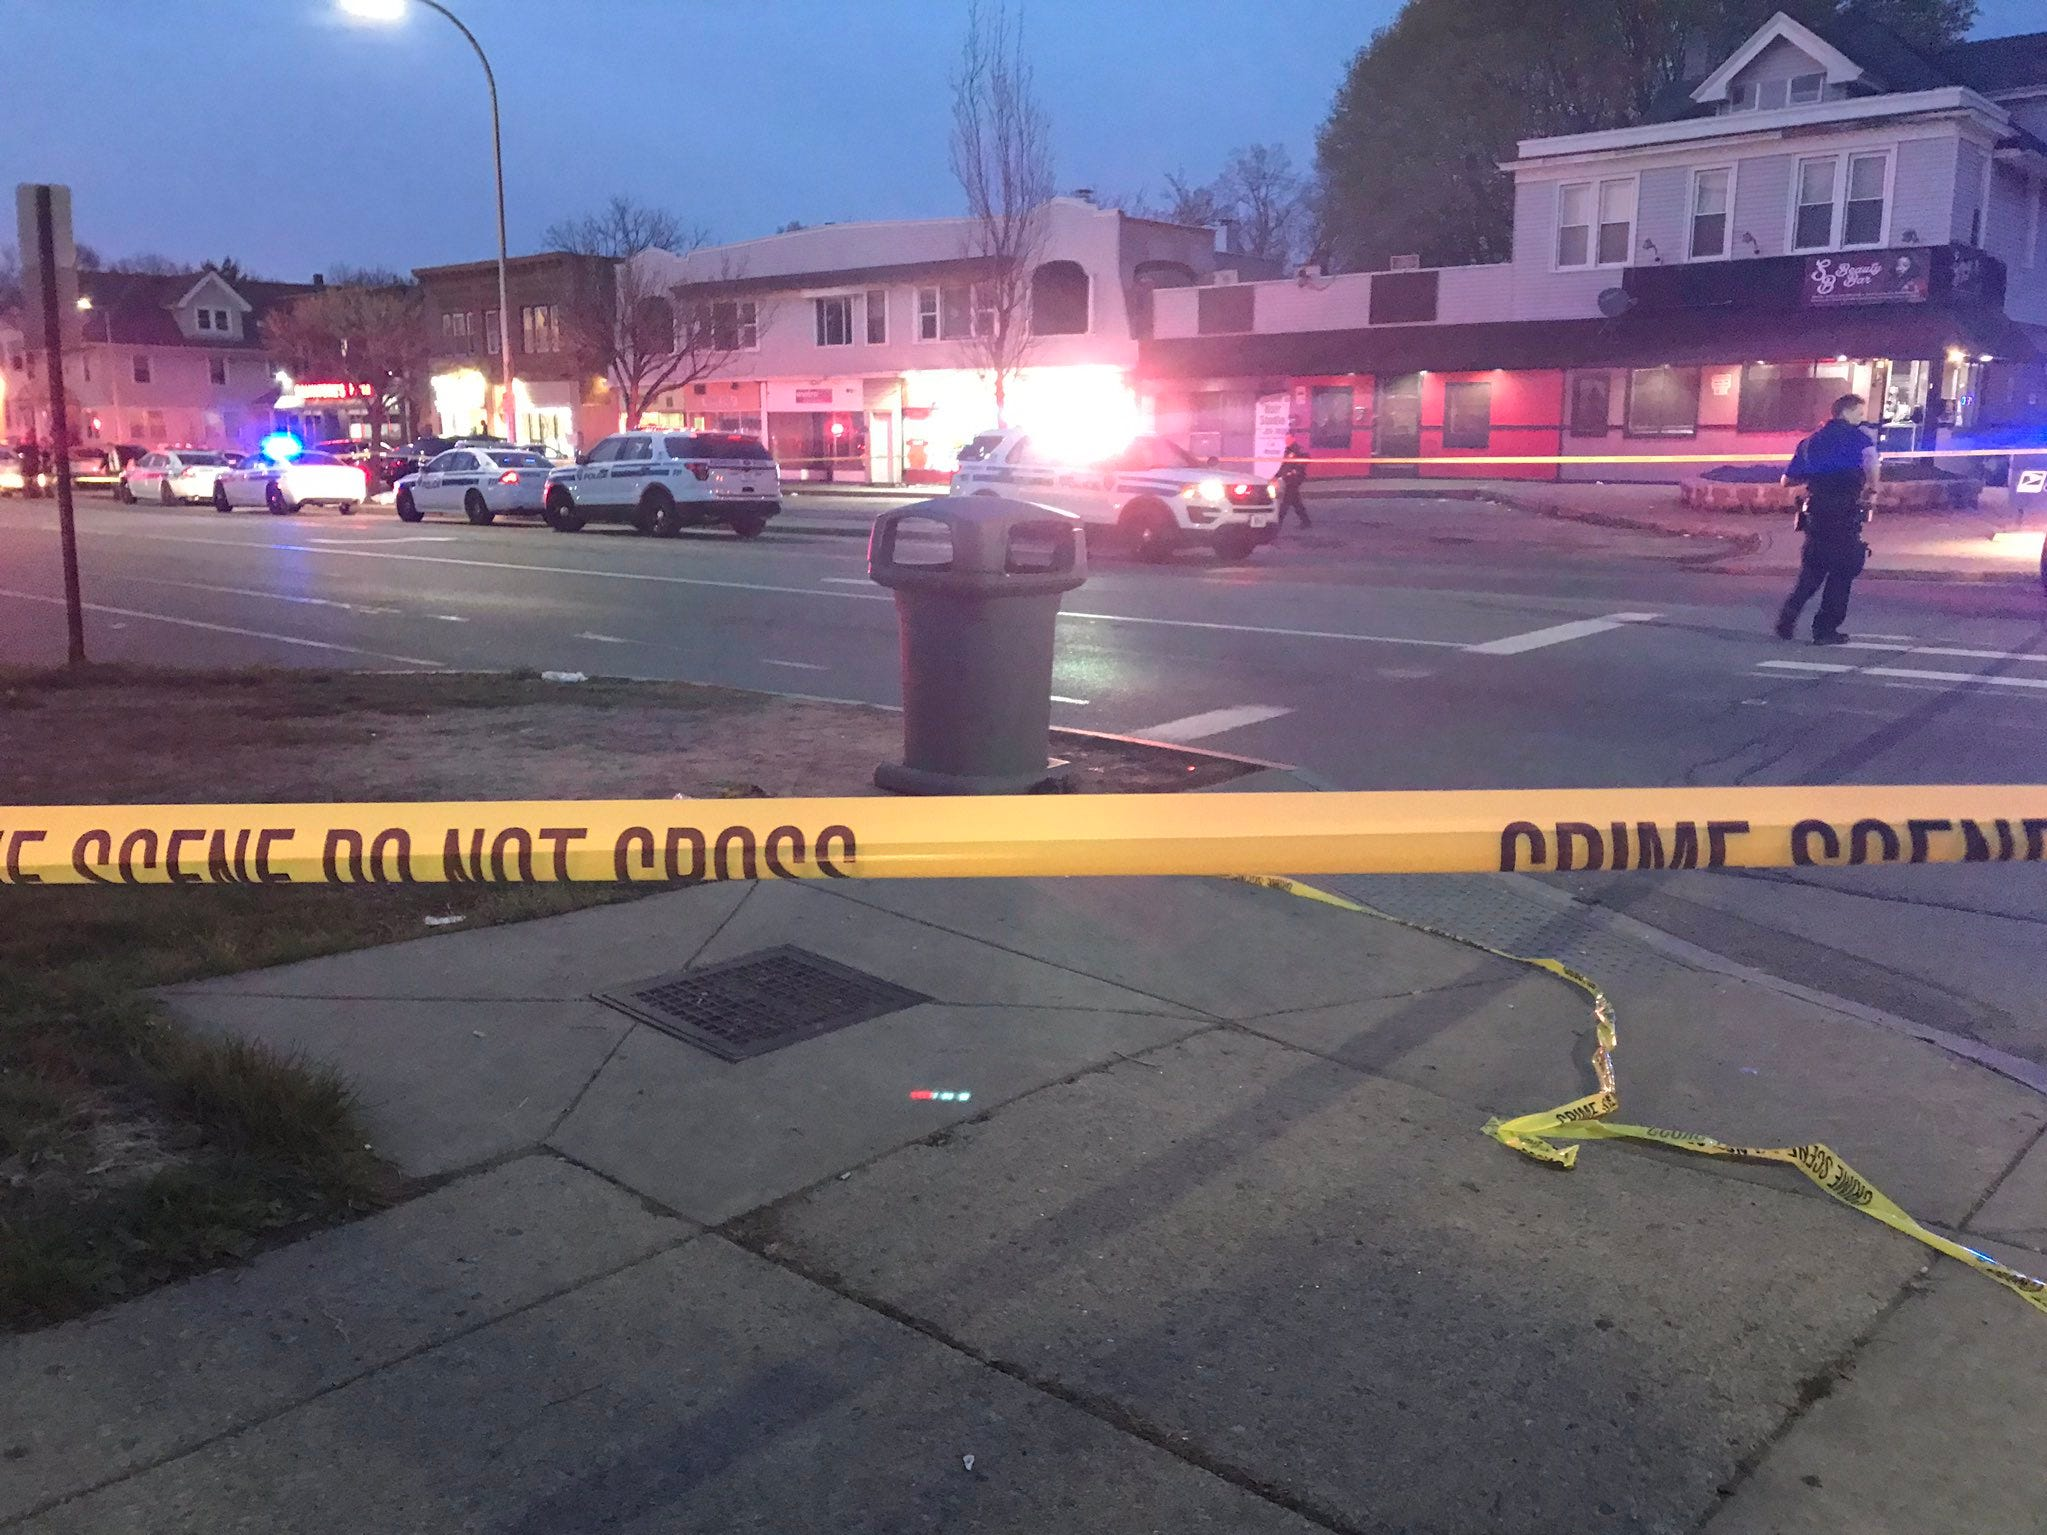 Police have closed off Dewey Avenue after a shooting in the Maplewood neighbhorhood on May 4, 2019.